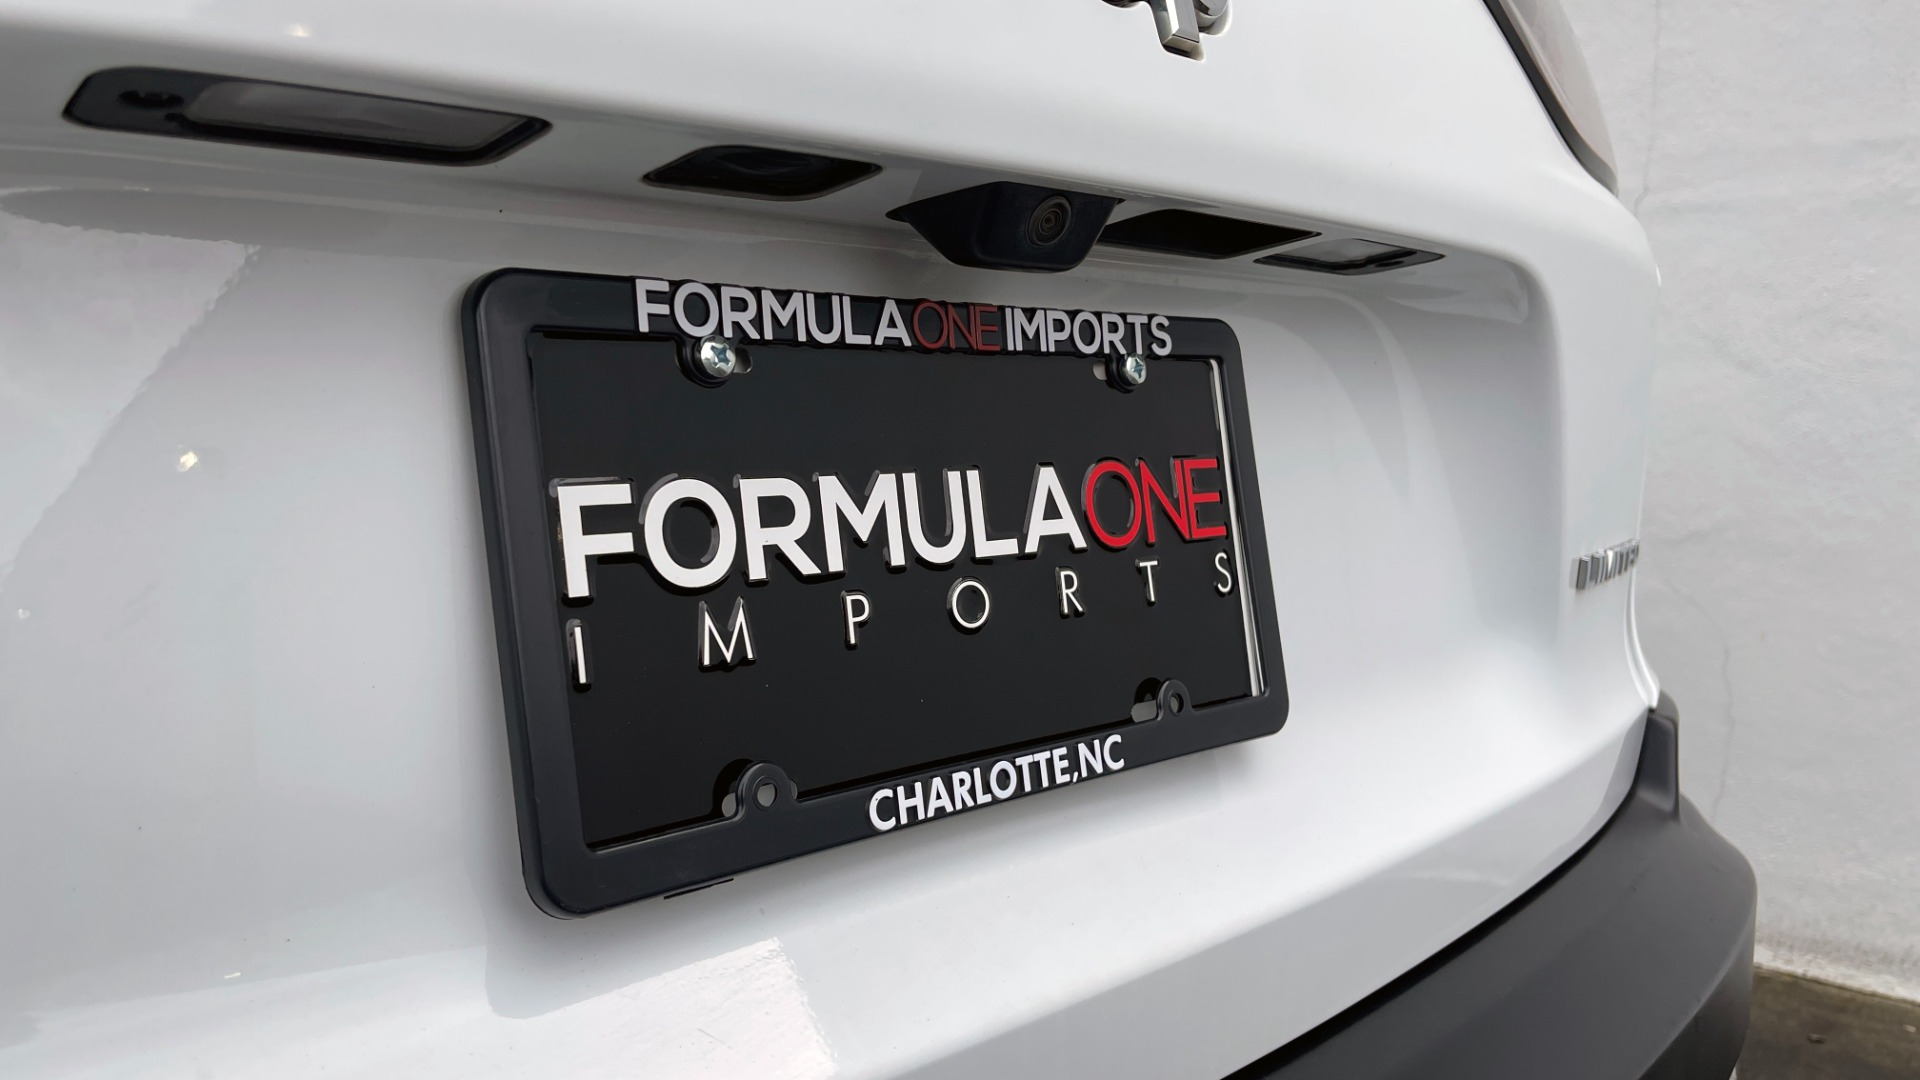 Used 2019 Jeep CHEROKEE LIMITED 2.4L / FWD / APPLE CARPLAY / KEYLESS-GO / REARVIEW for sale $24,395 at Formula Imports in Charlotte NC 28227 22